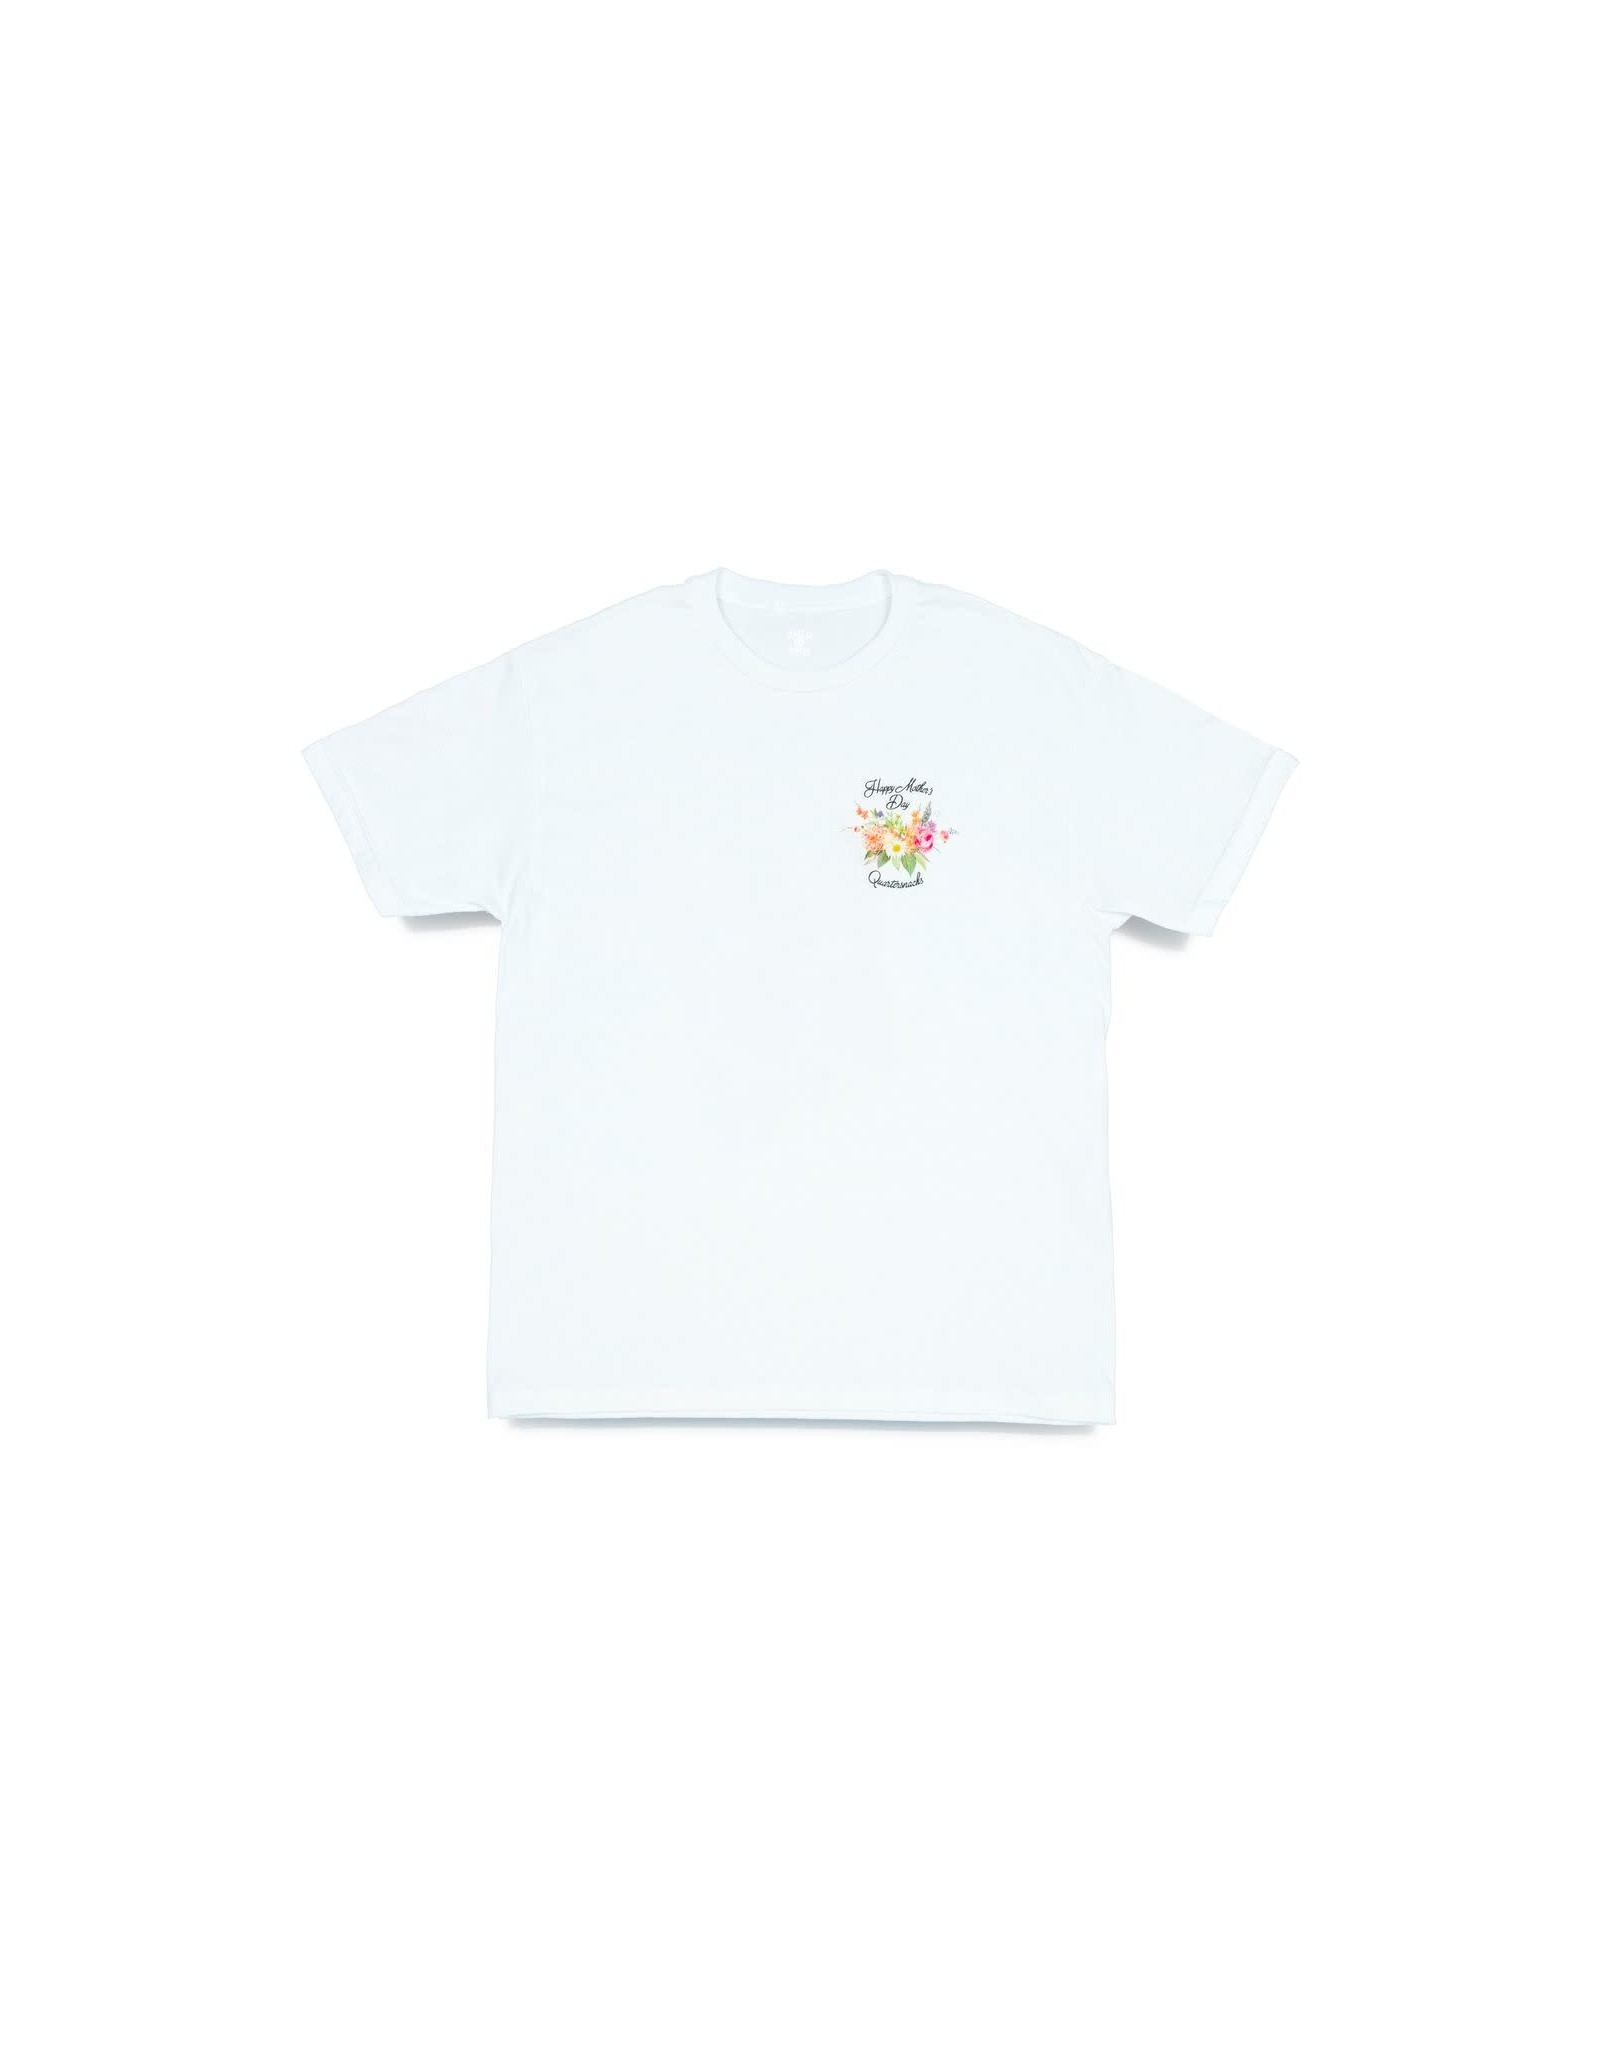 QuarterSnacks Mothers Day Snackman Charity Tee - White